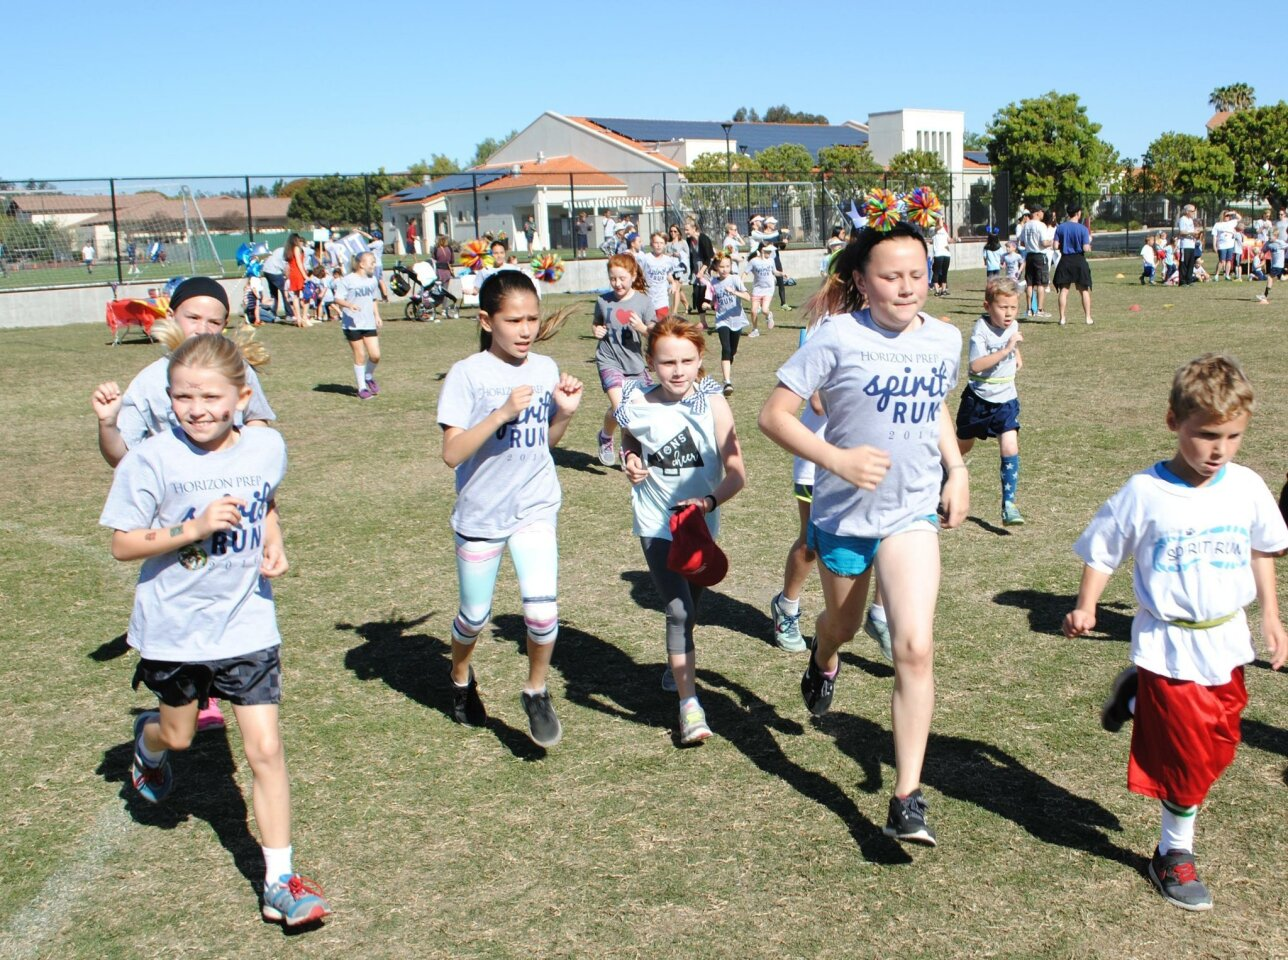 Horizon Prep Lions Run for Missions